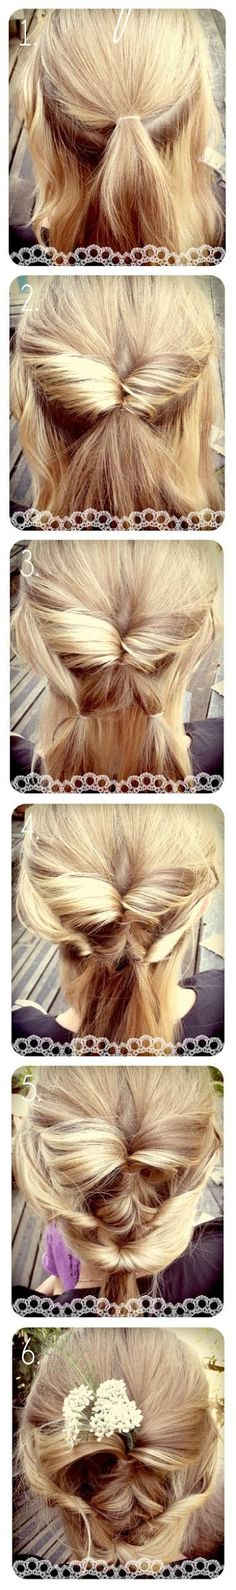 Make a Diy Wedding Hair | Beauty tutorials